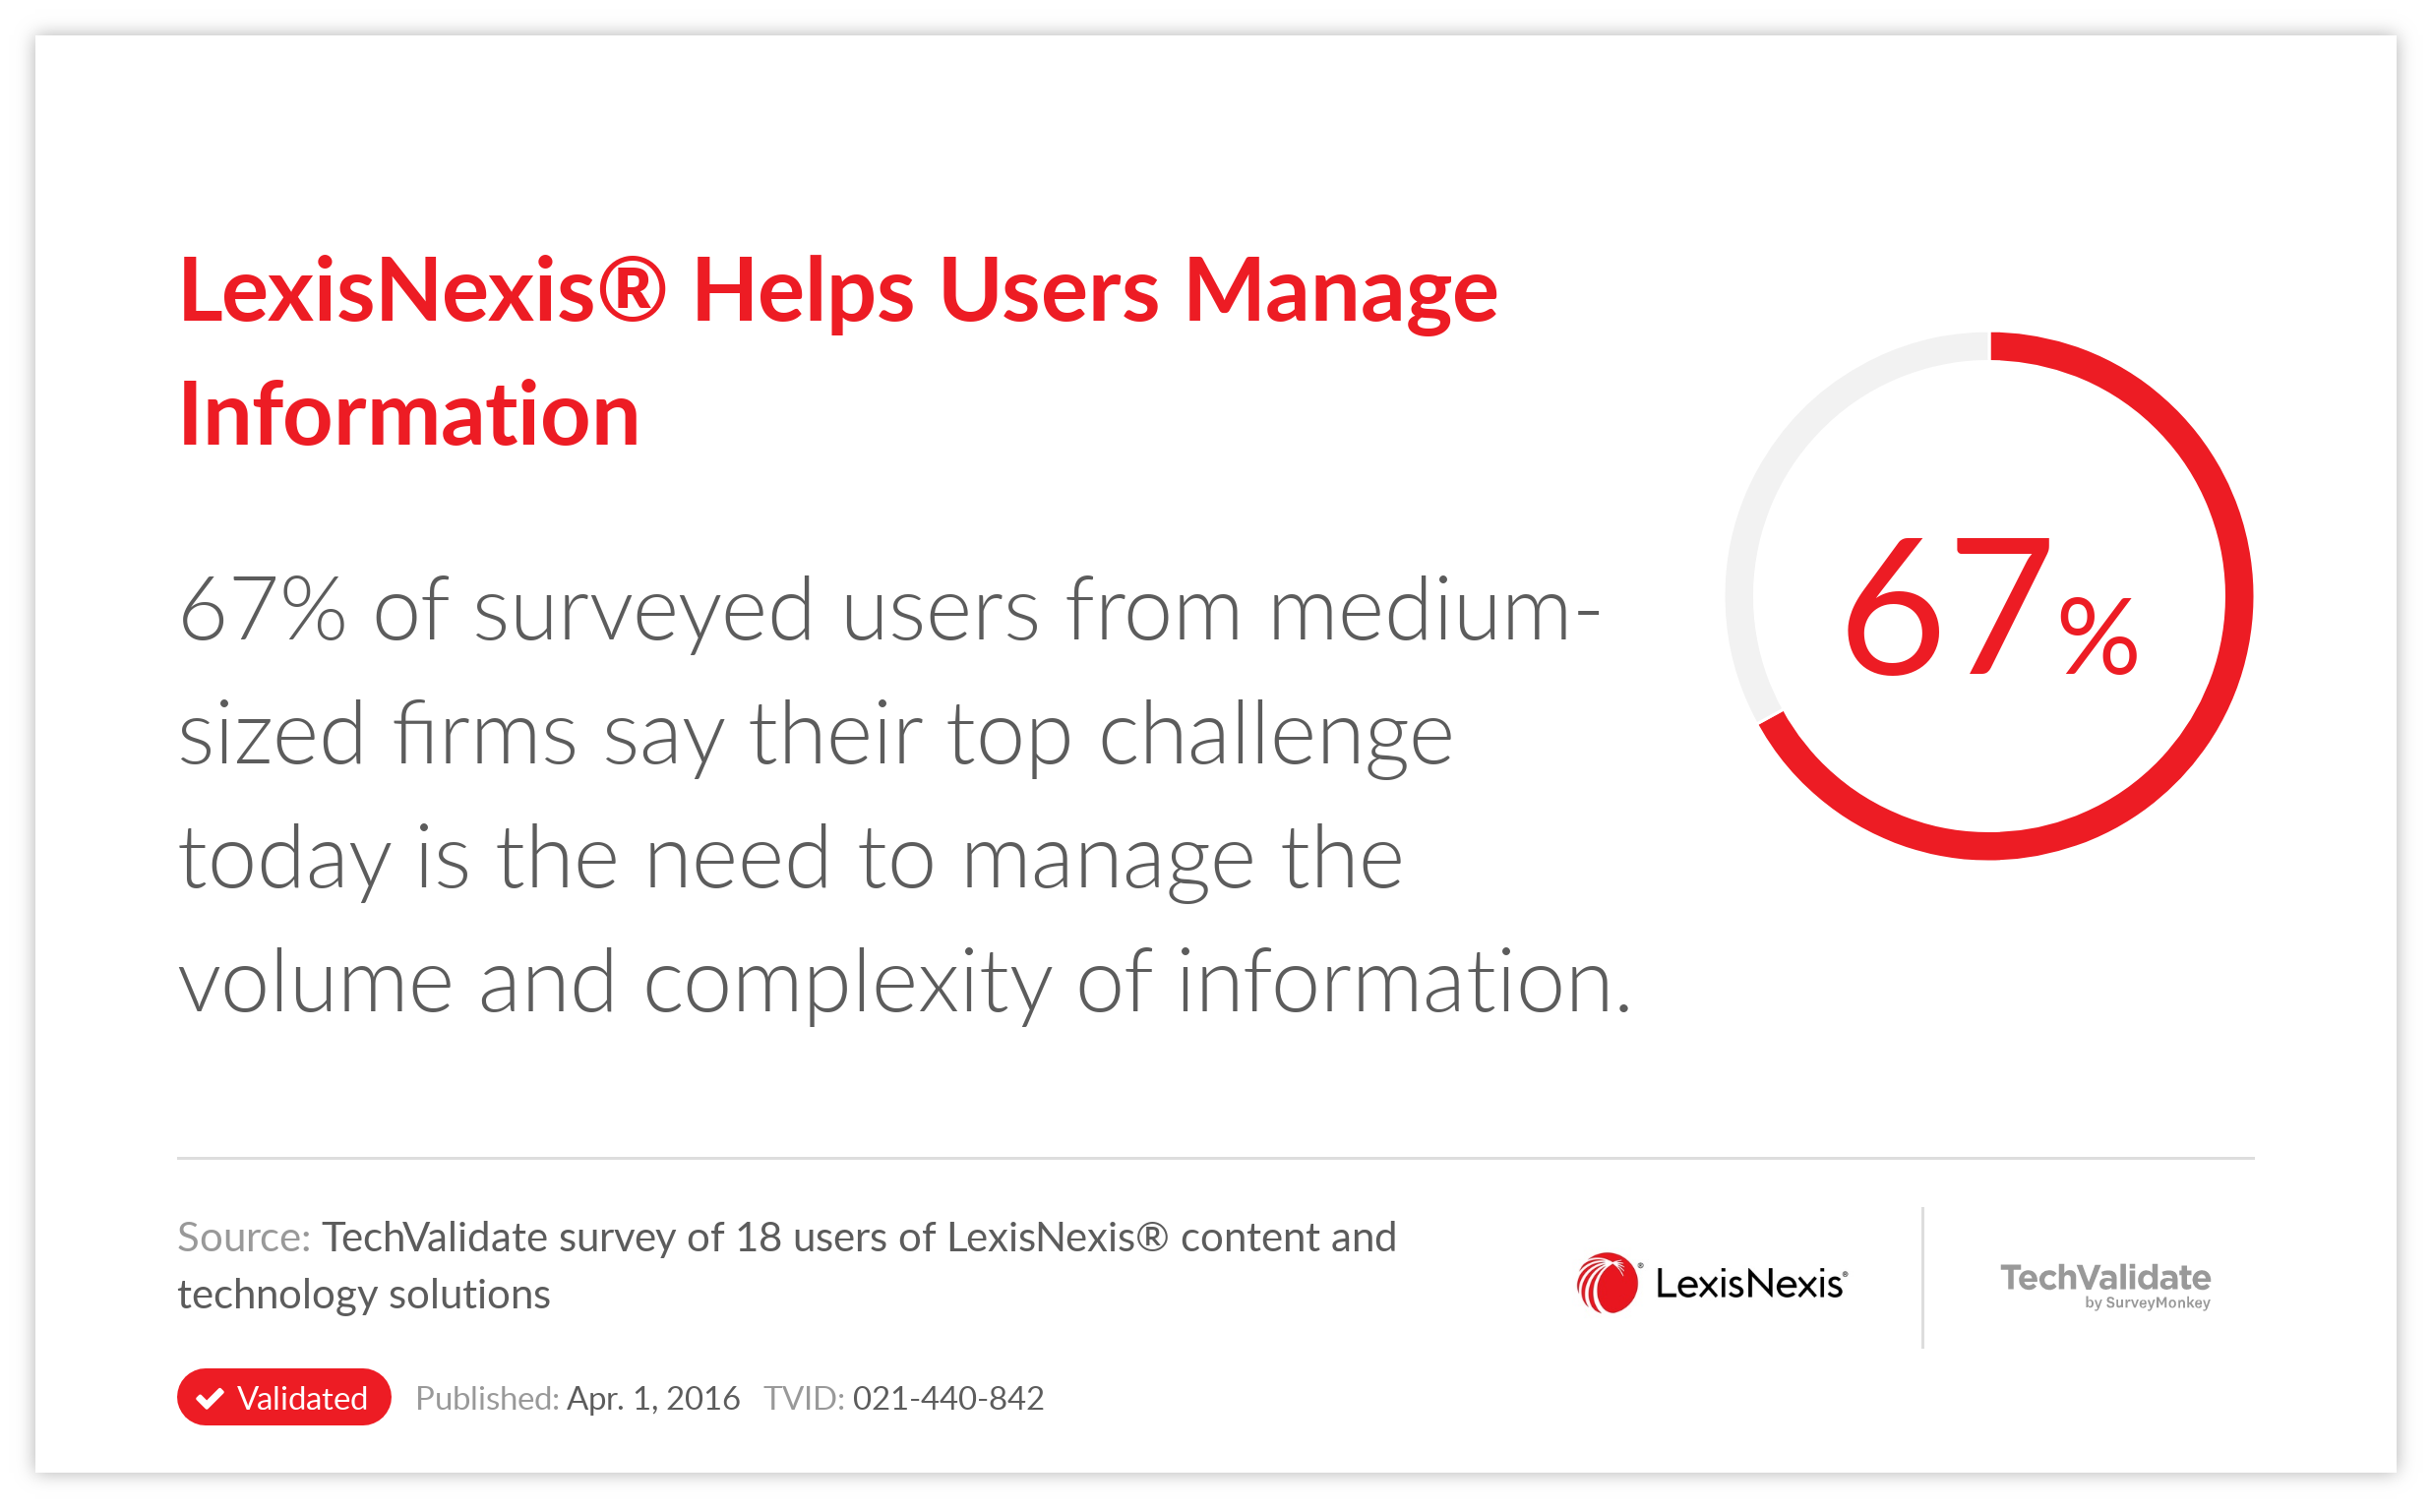 LexisNexis® Helps Users Manage Information